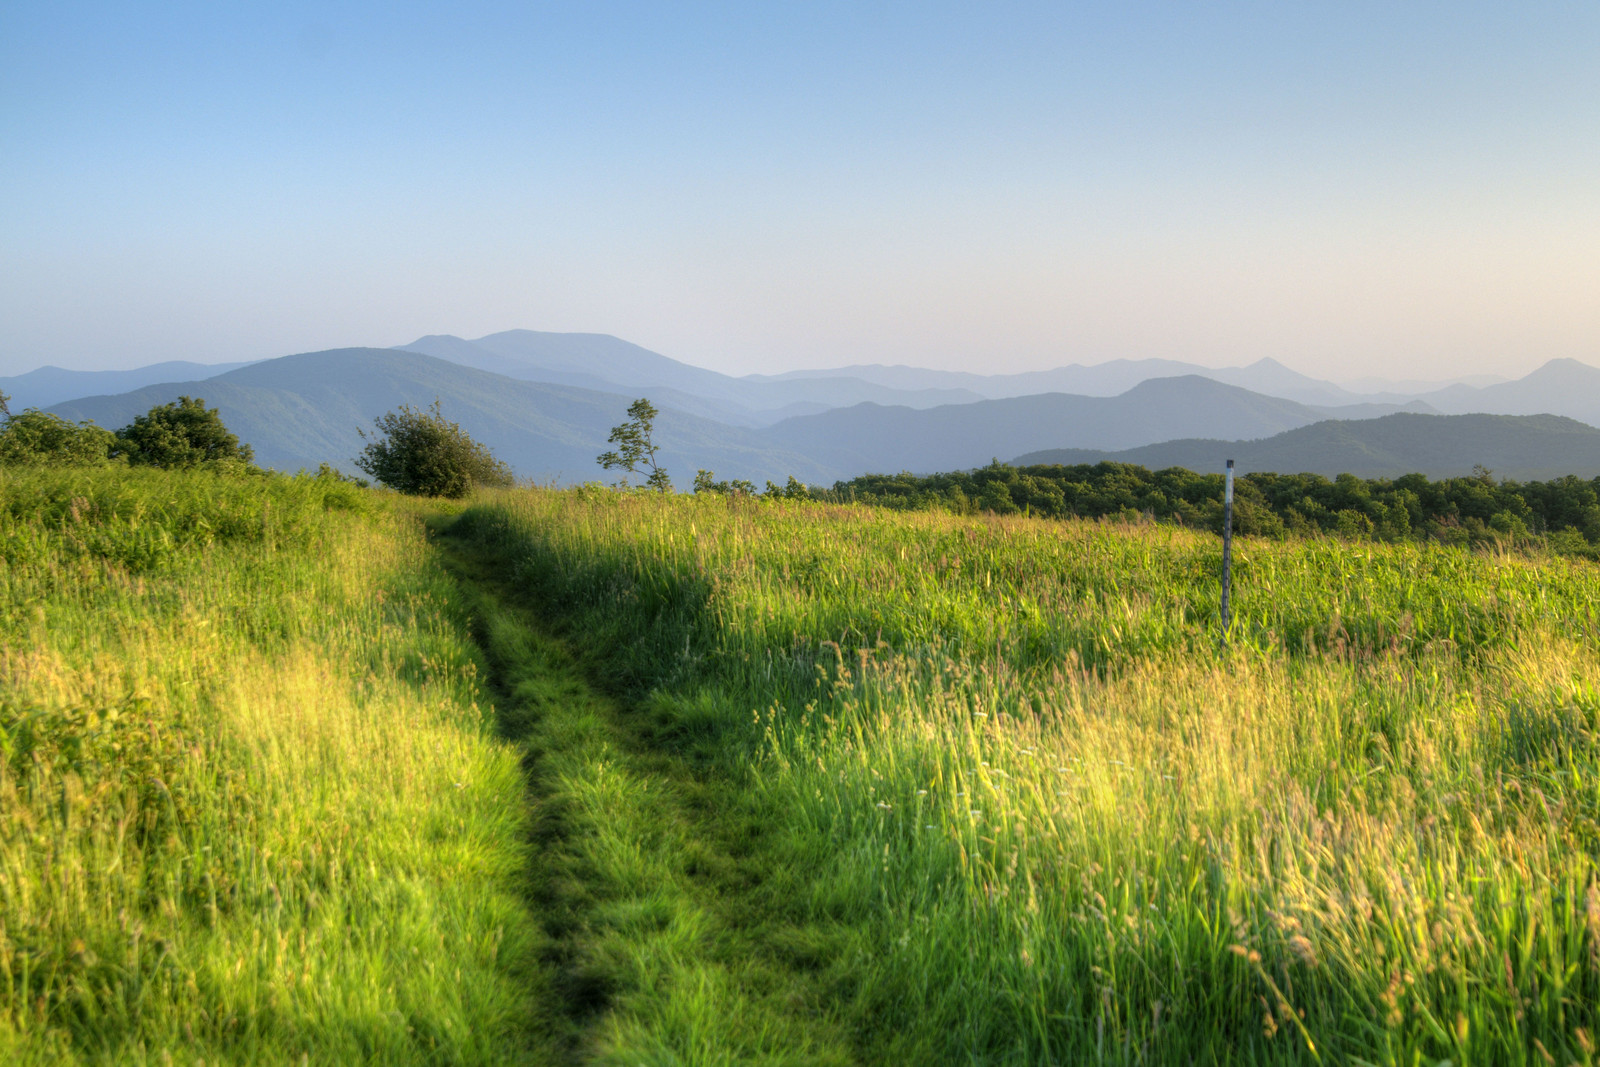 The well-worn Appalachian Trail cuts a path through tall grasses at the Beauty Spot on Unaka Mountain in Erwin, TN on Saturday, June 13, 2015. Copyright 2015 Jason Barnette The Beauty Spot is located at Mile 350.5 on the Appalachian Trail in Tennessee.